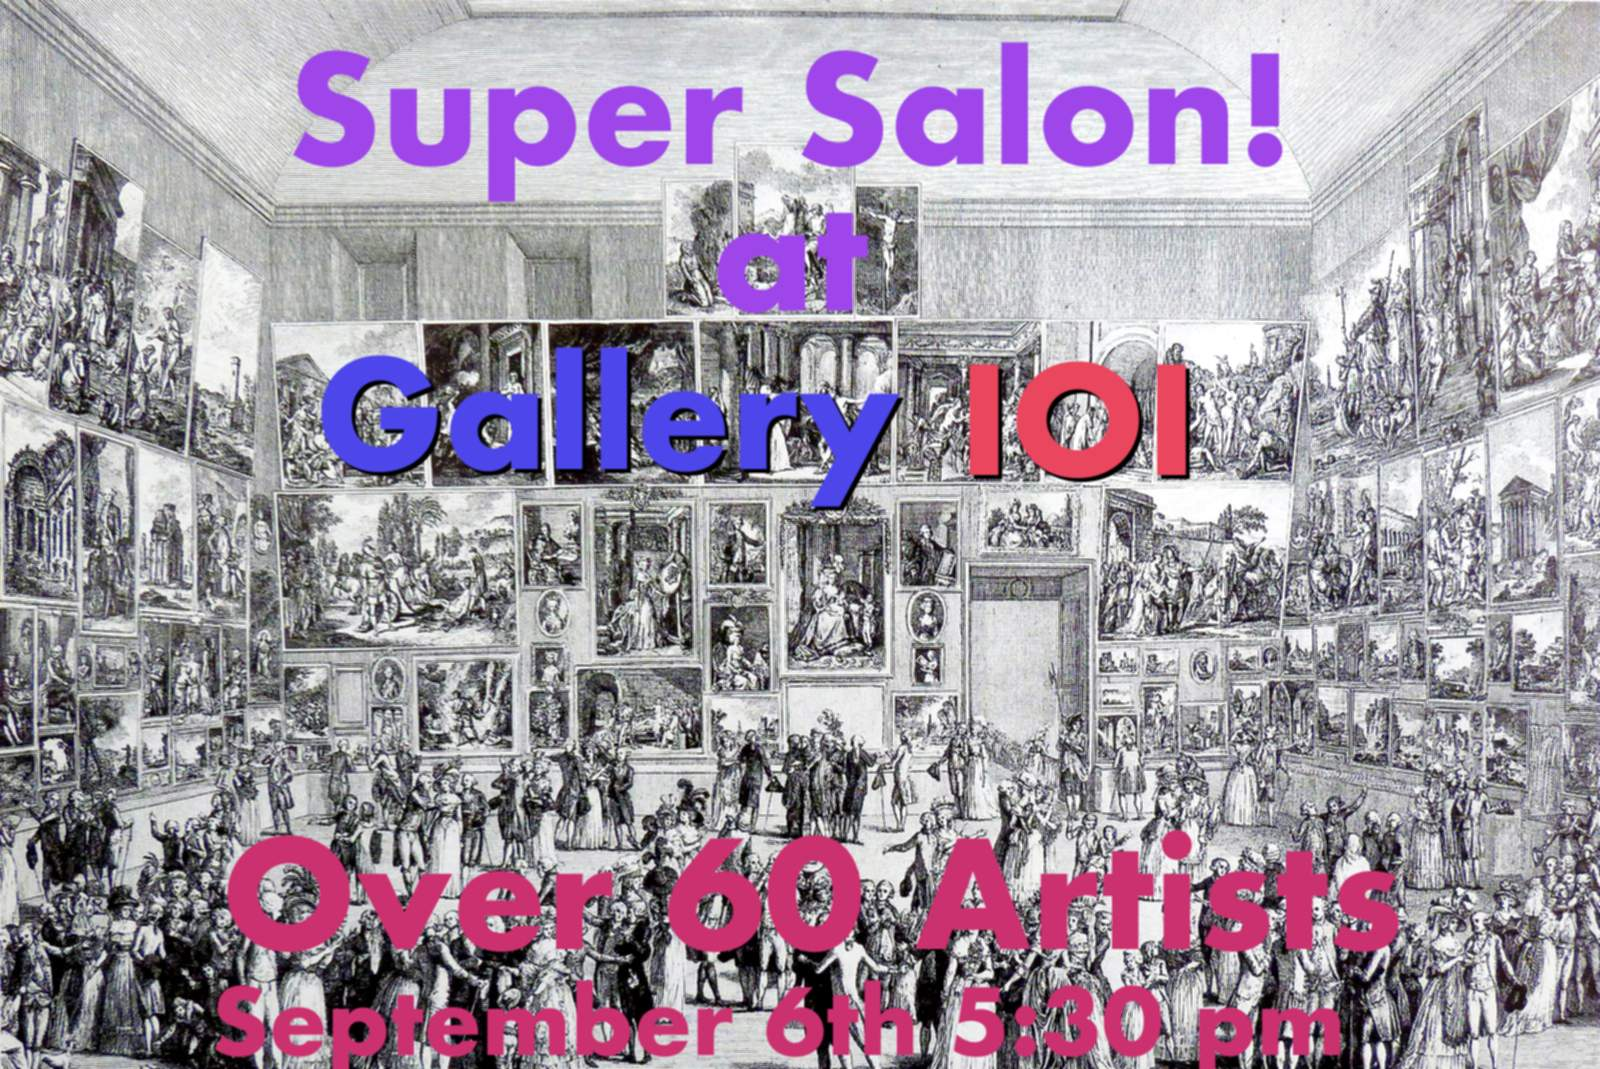 SuperSalon flyer.jpg